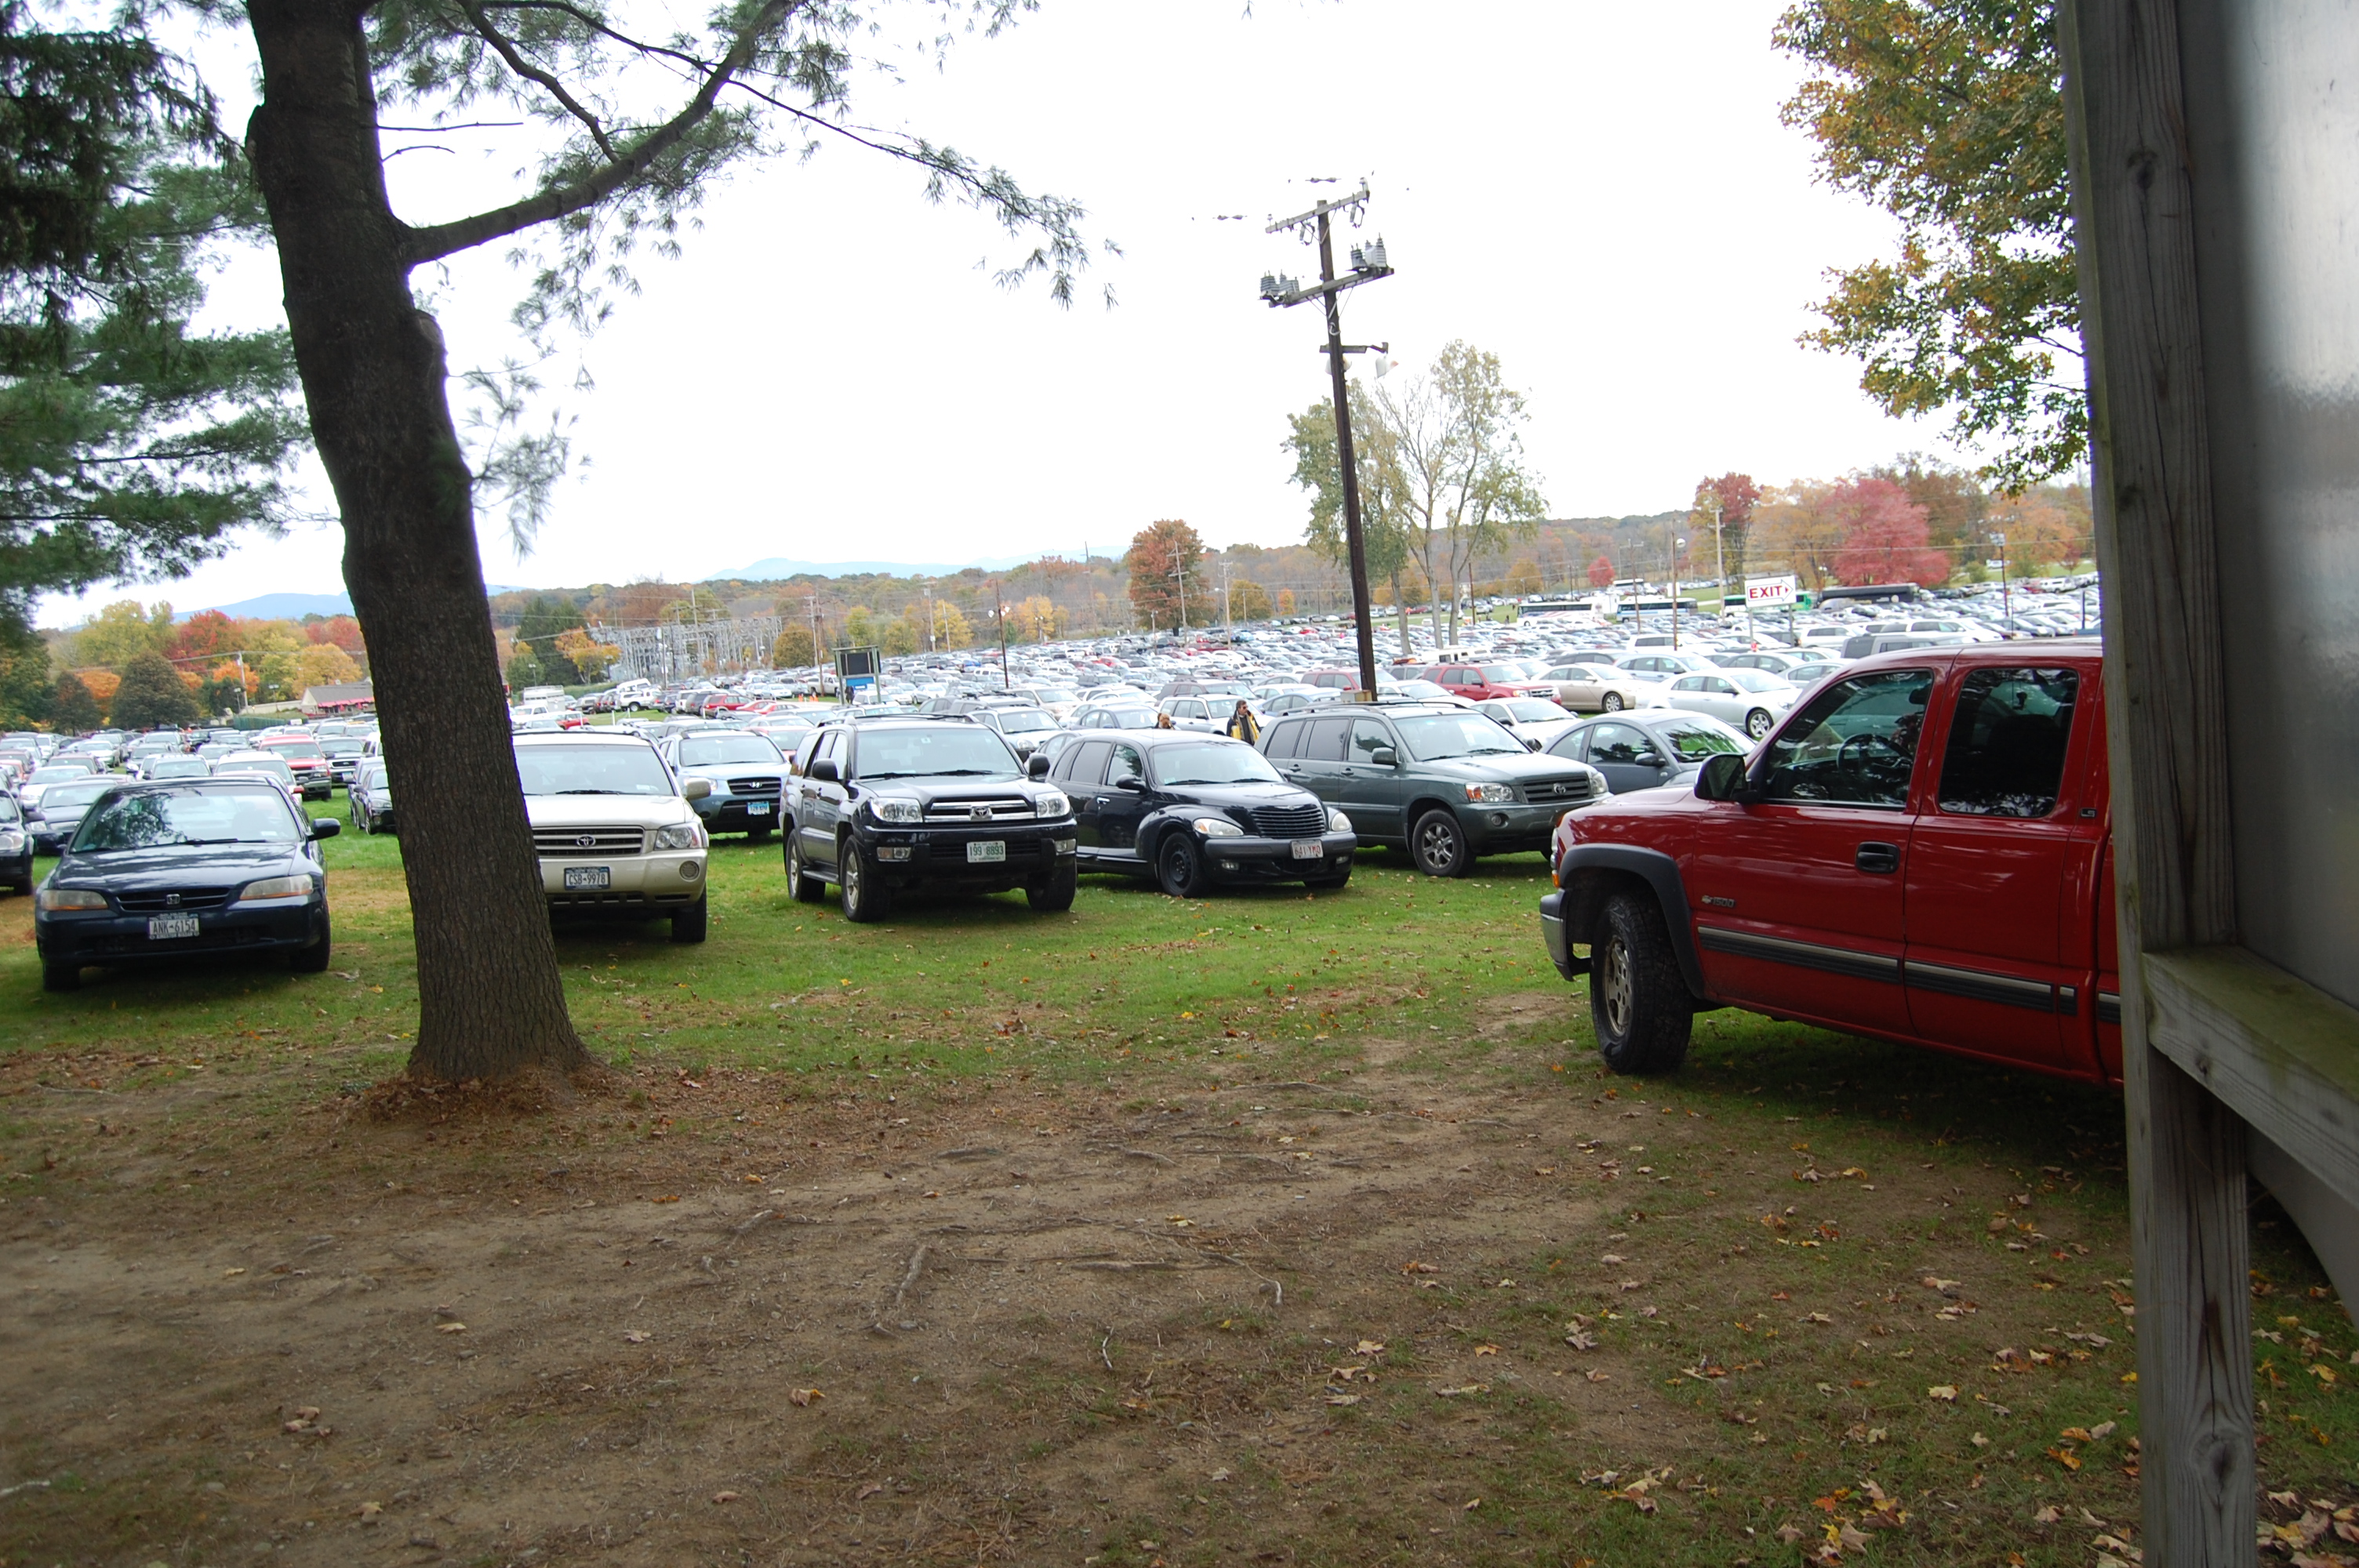 One of the parking lots